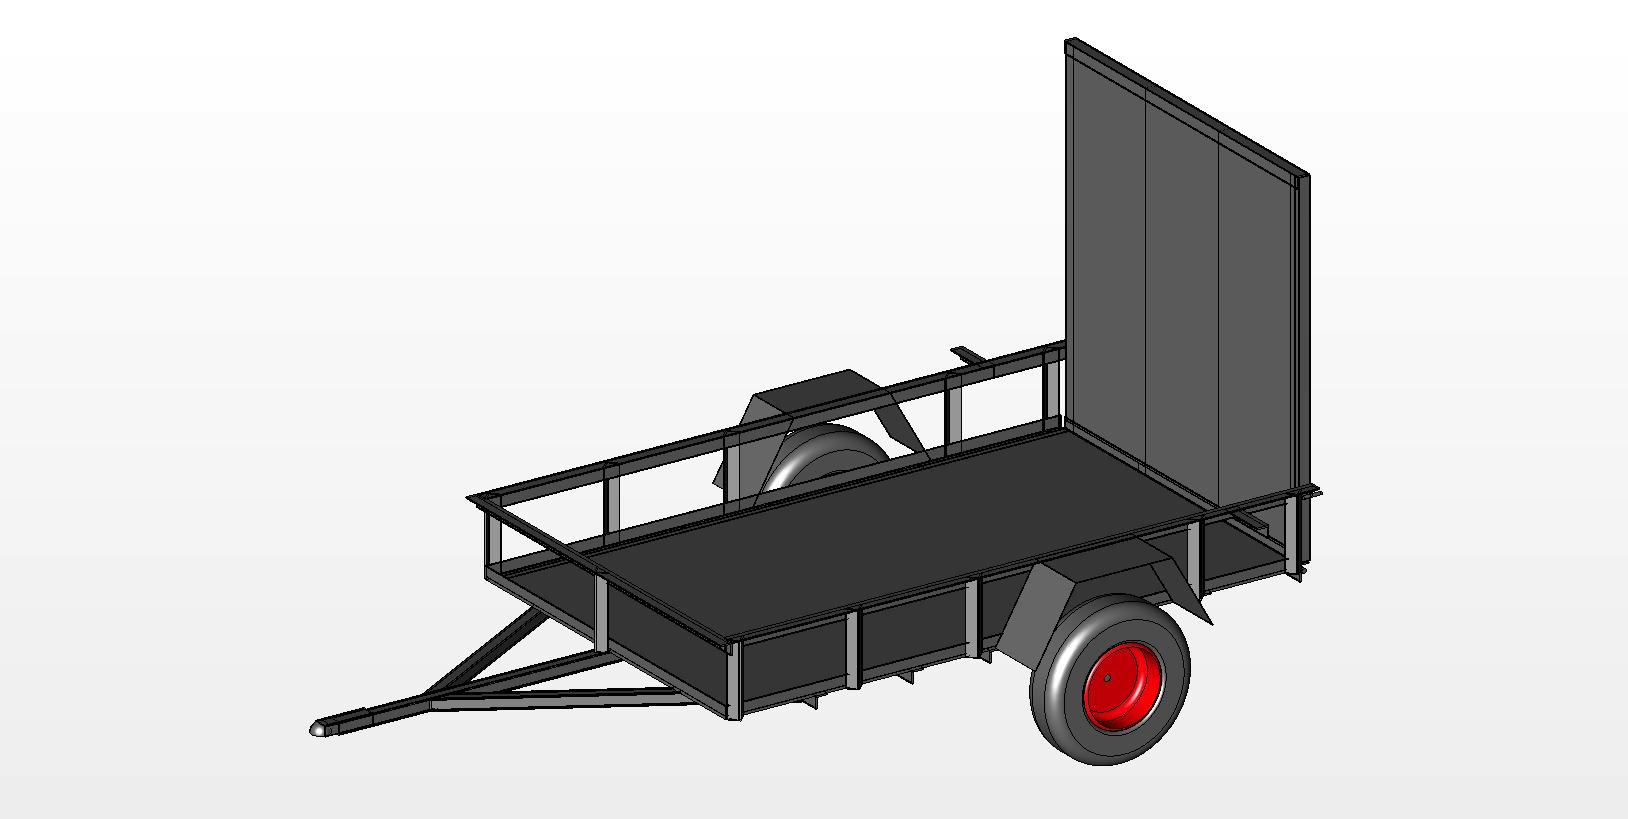 Innovative Off Road Camper Trailer Plans Trailer Design 3 Sizes